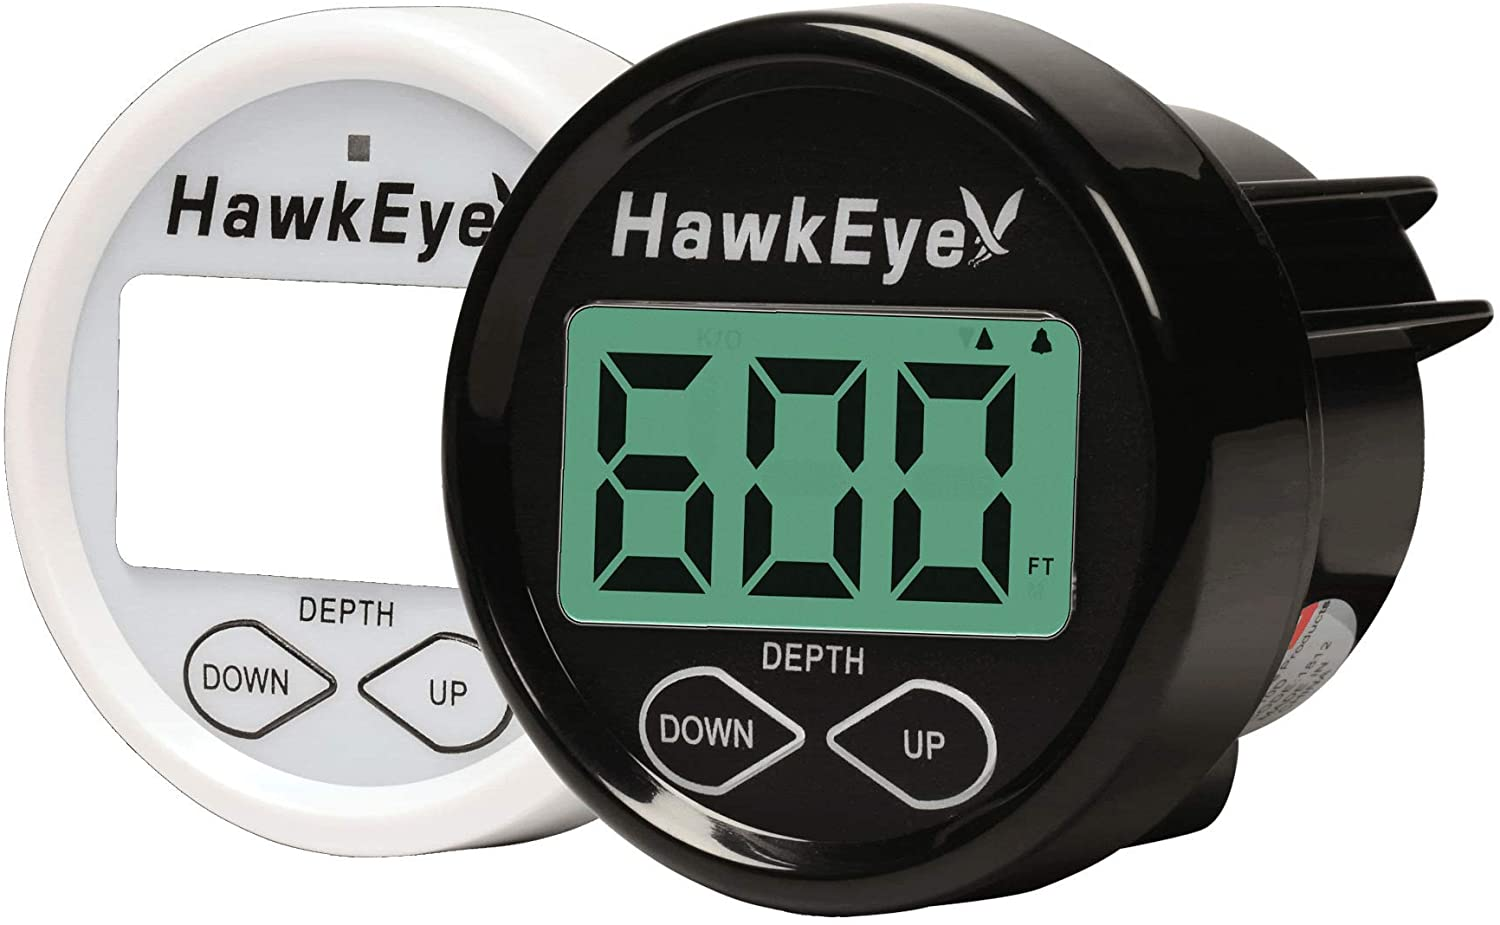 HawkEye DT2B-TM DepthTrax 2B,Black/White